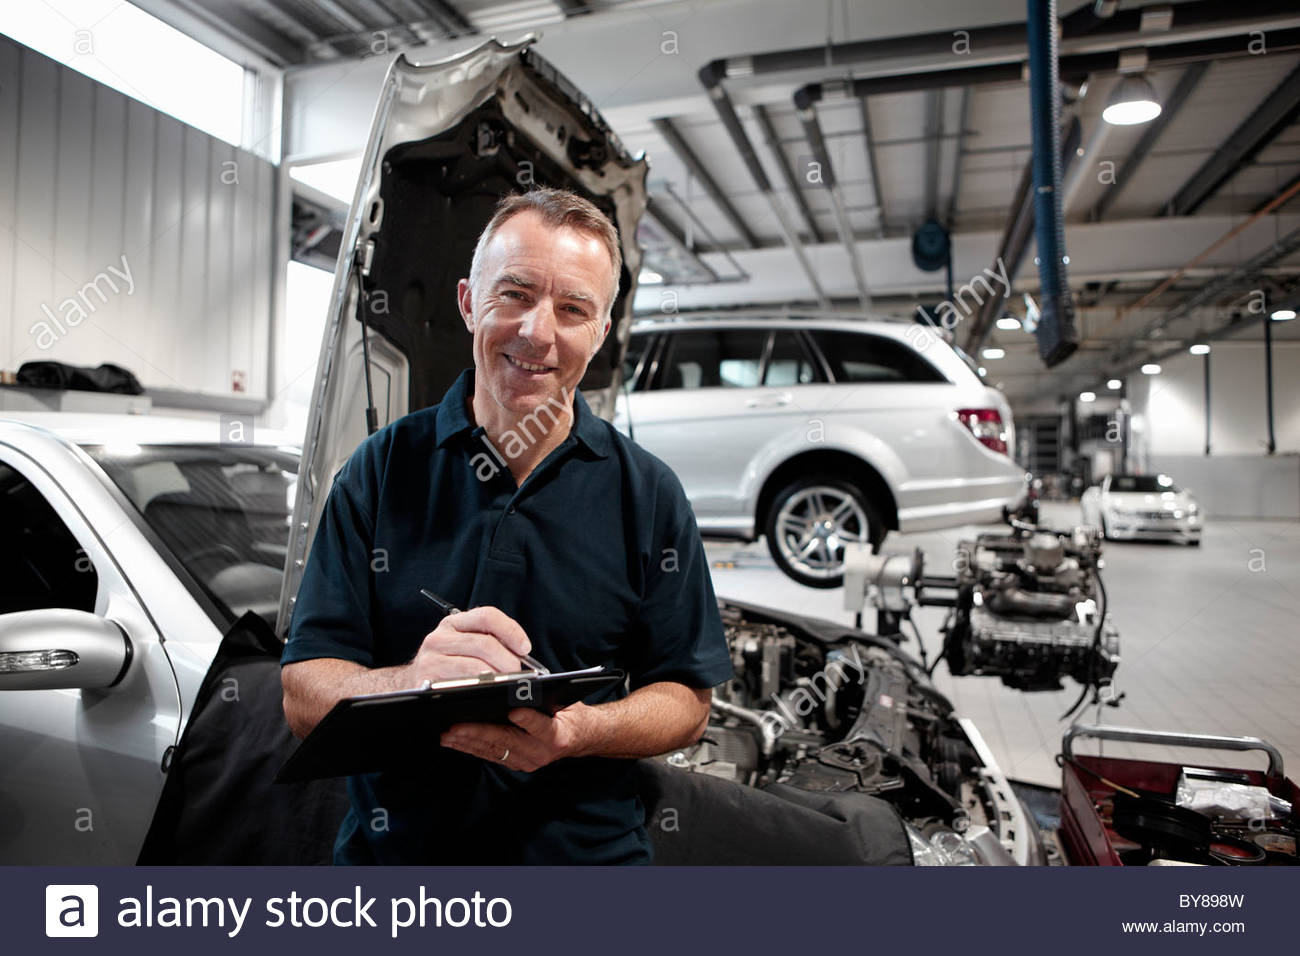 Mechanic working in auto repair shop - Stock Image